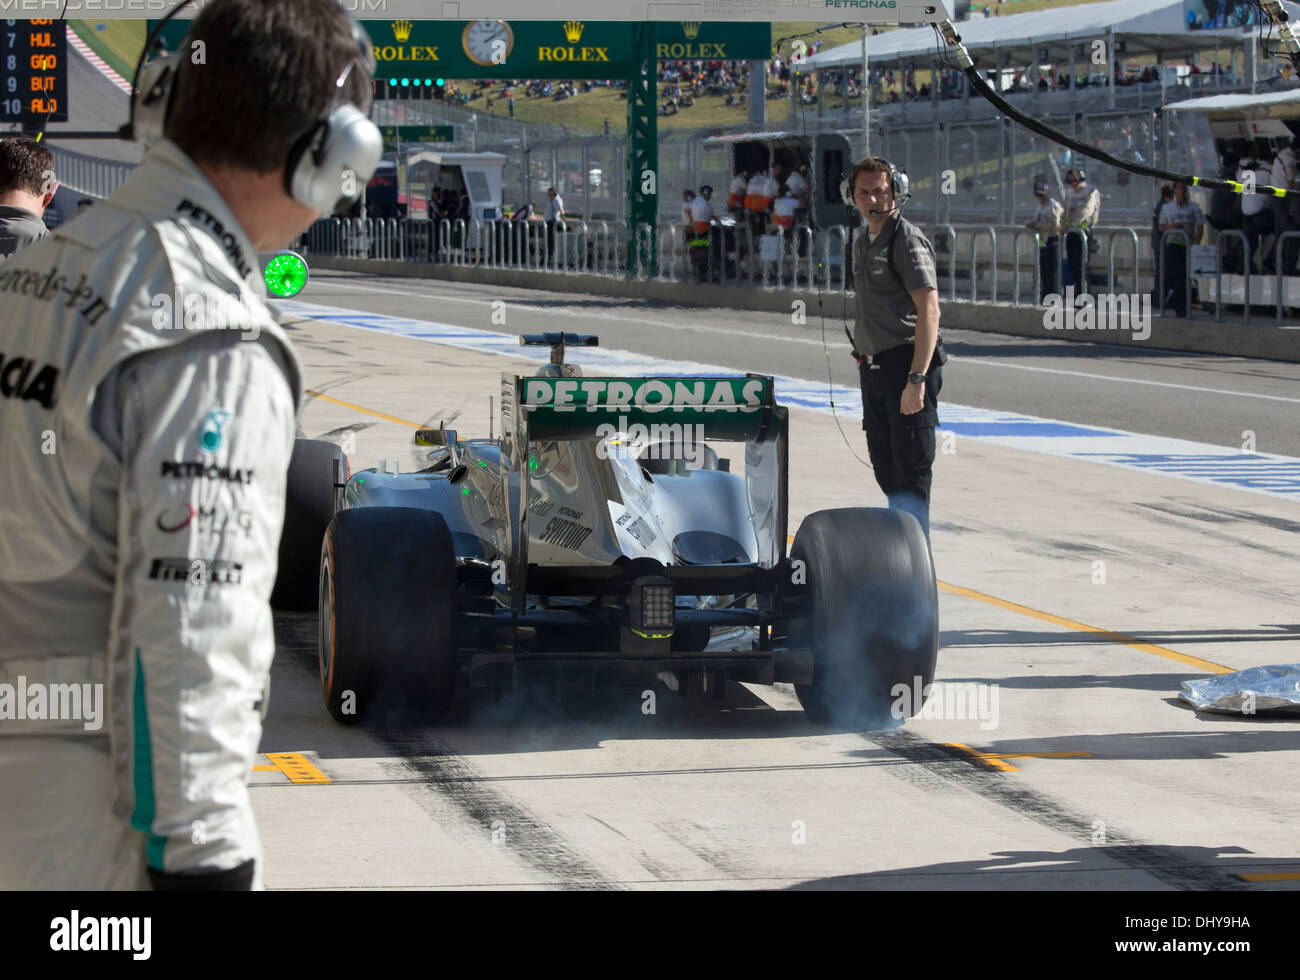 e28c5e674f79b Driver Lewis Hamilton of Mercedes AMG Petronas burns rubber leaving the  pits at practice session for